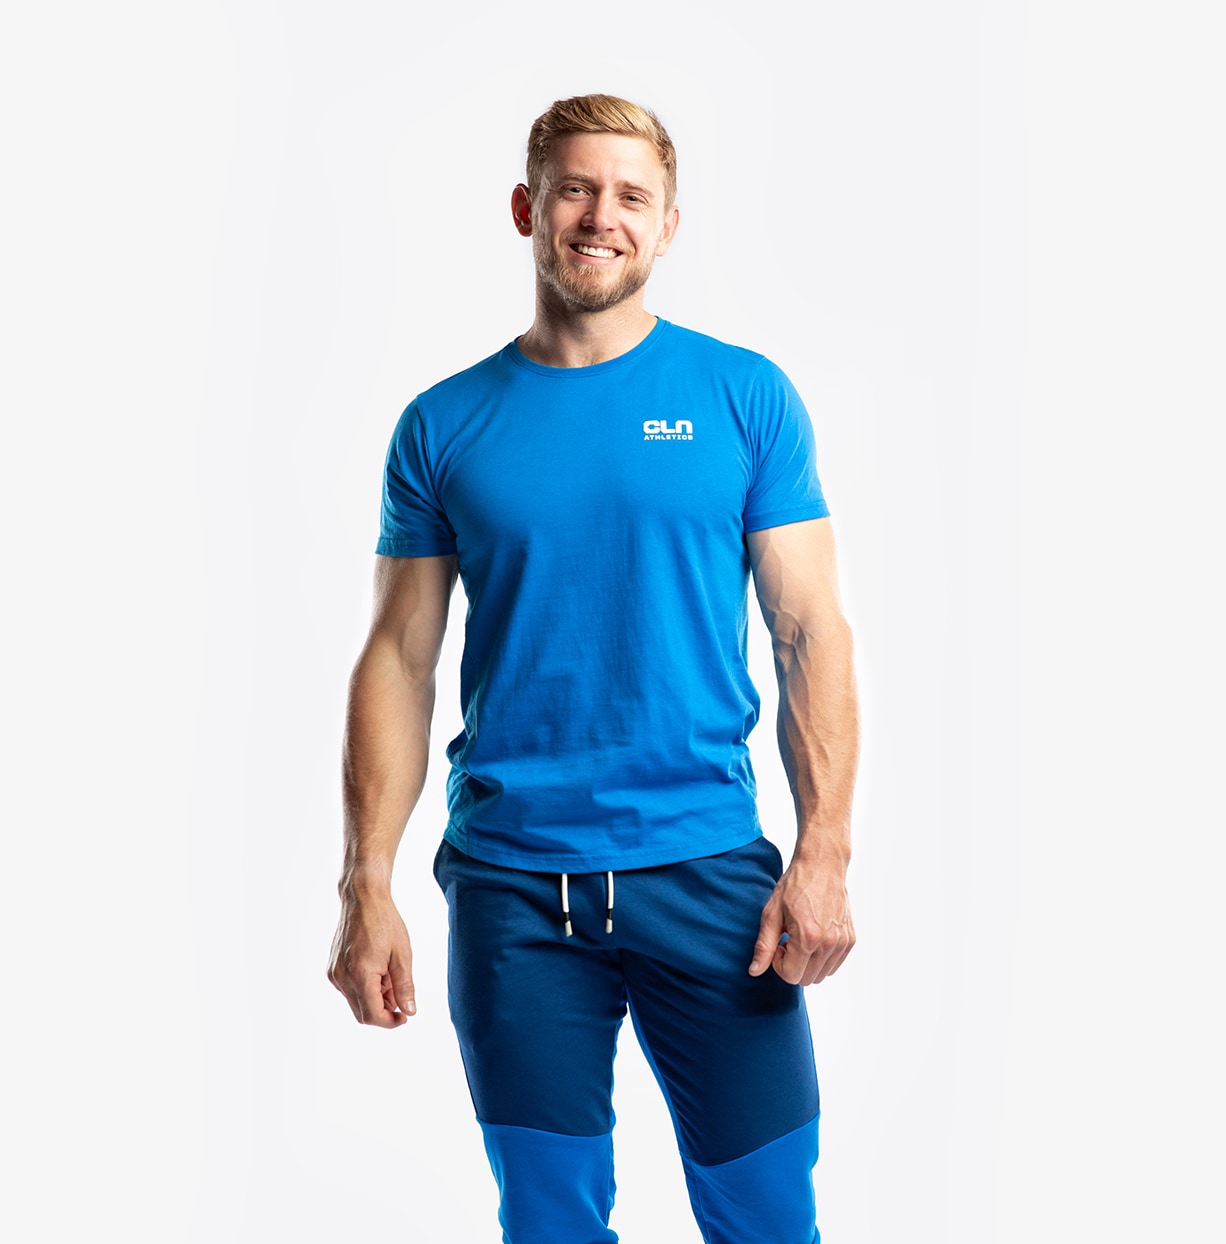 CLN Cruel T-Shirt Olympic Blue